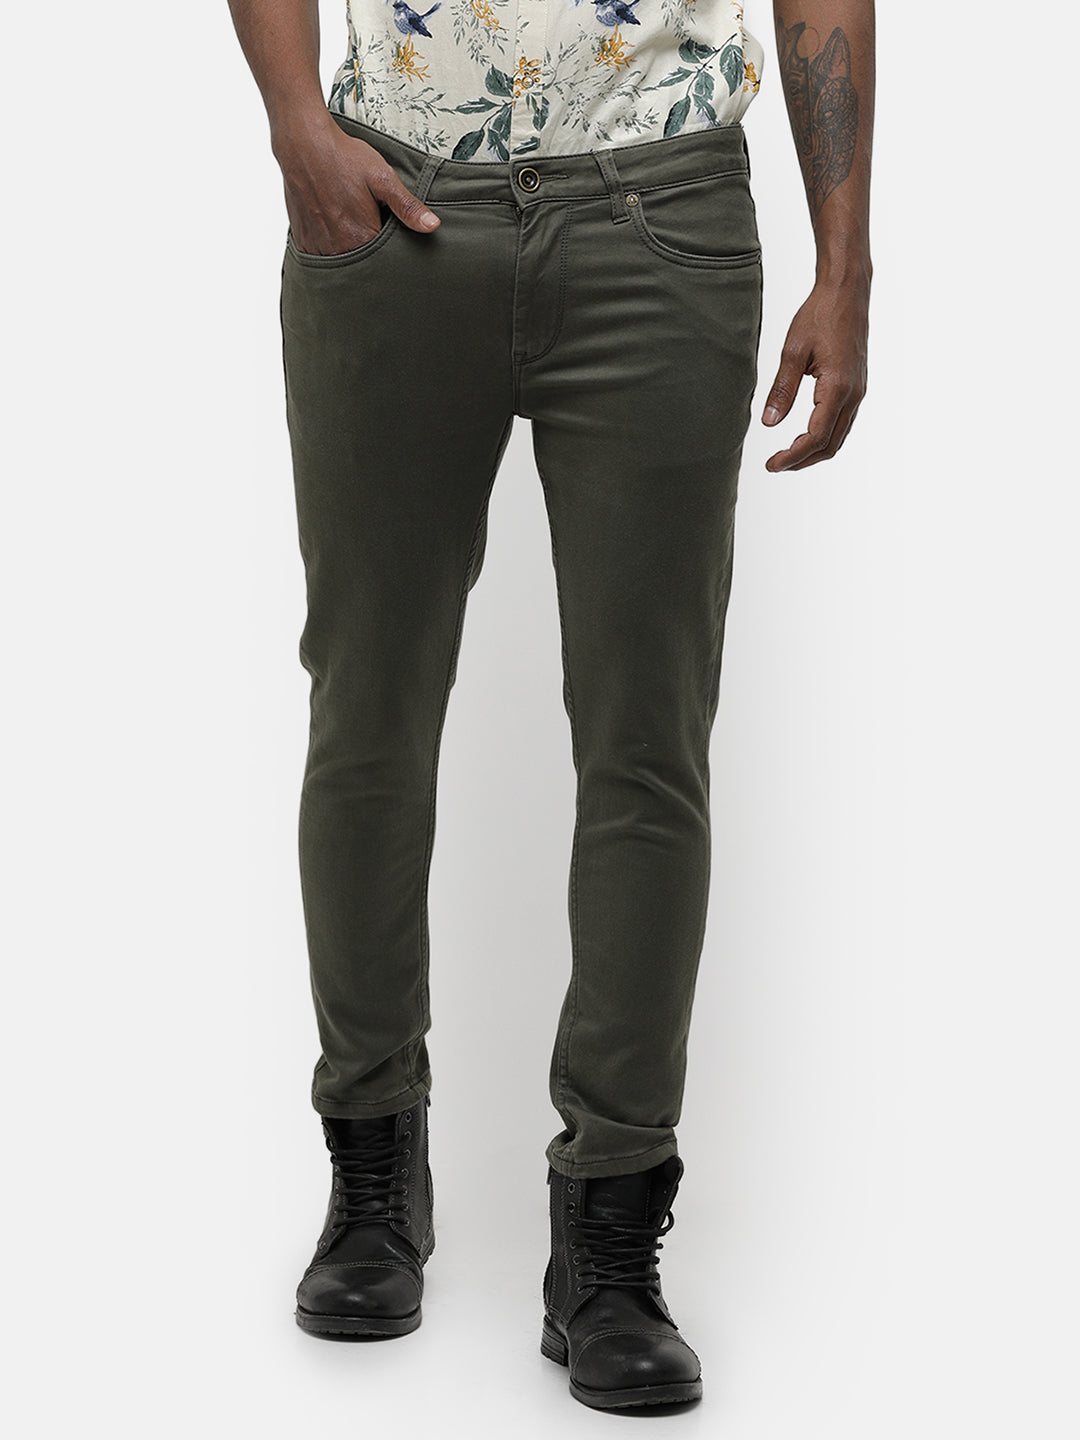 Men's Olive green tapered fit denim